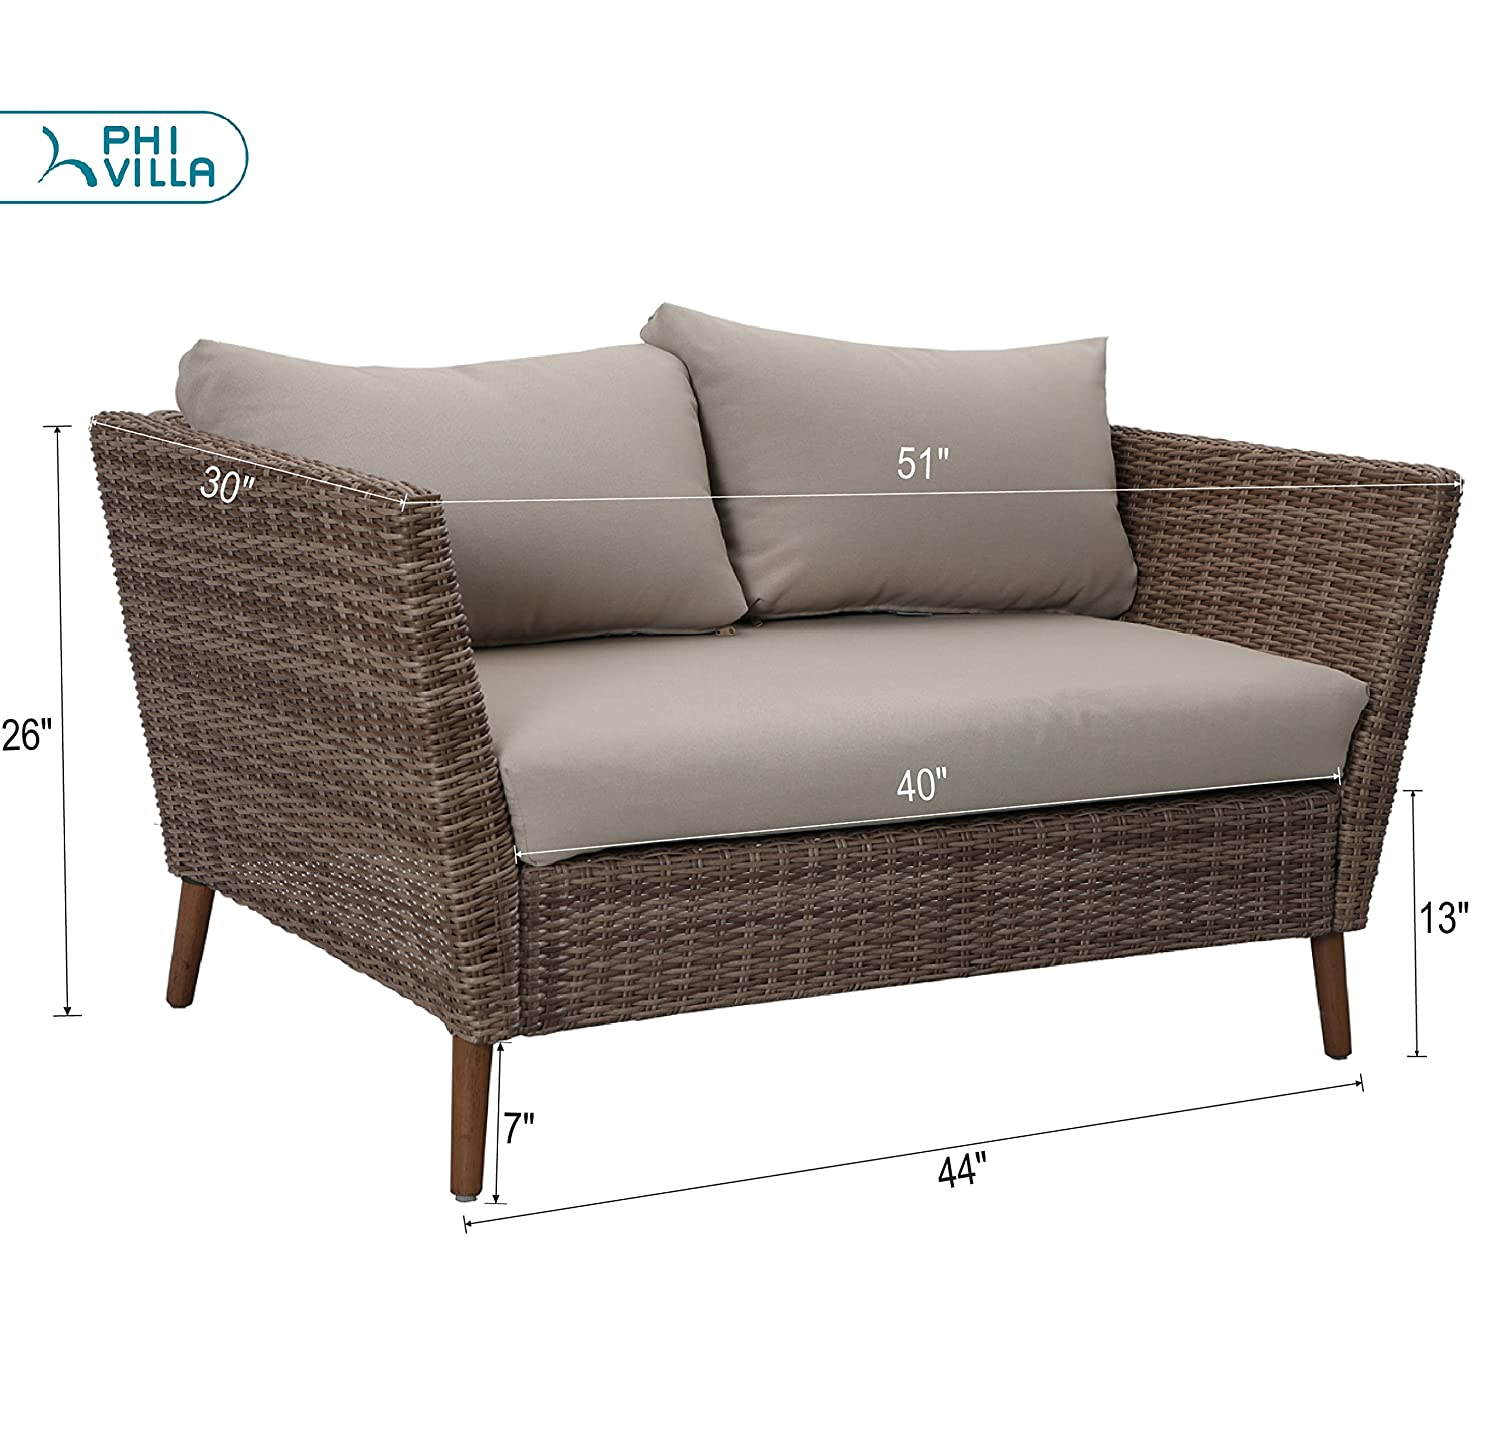 PHI VILLA 5 Piece Outdoor Patio Gradual Changing Color Rattan Wicker Sofa Chairs,Loveseat,Coffee Table Sectional Furniture Set with Cushion and Throw Pillows